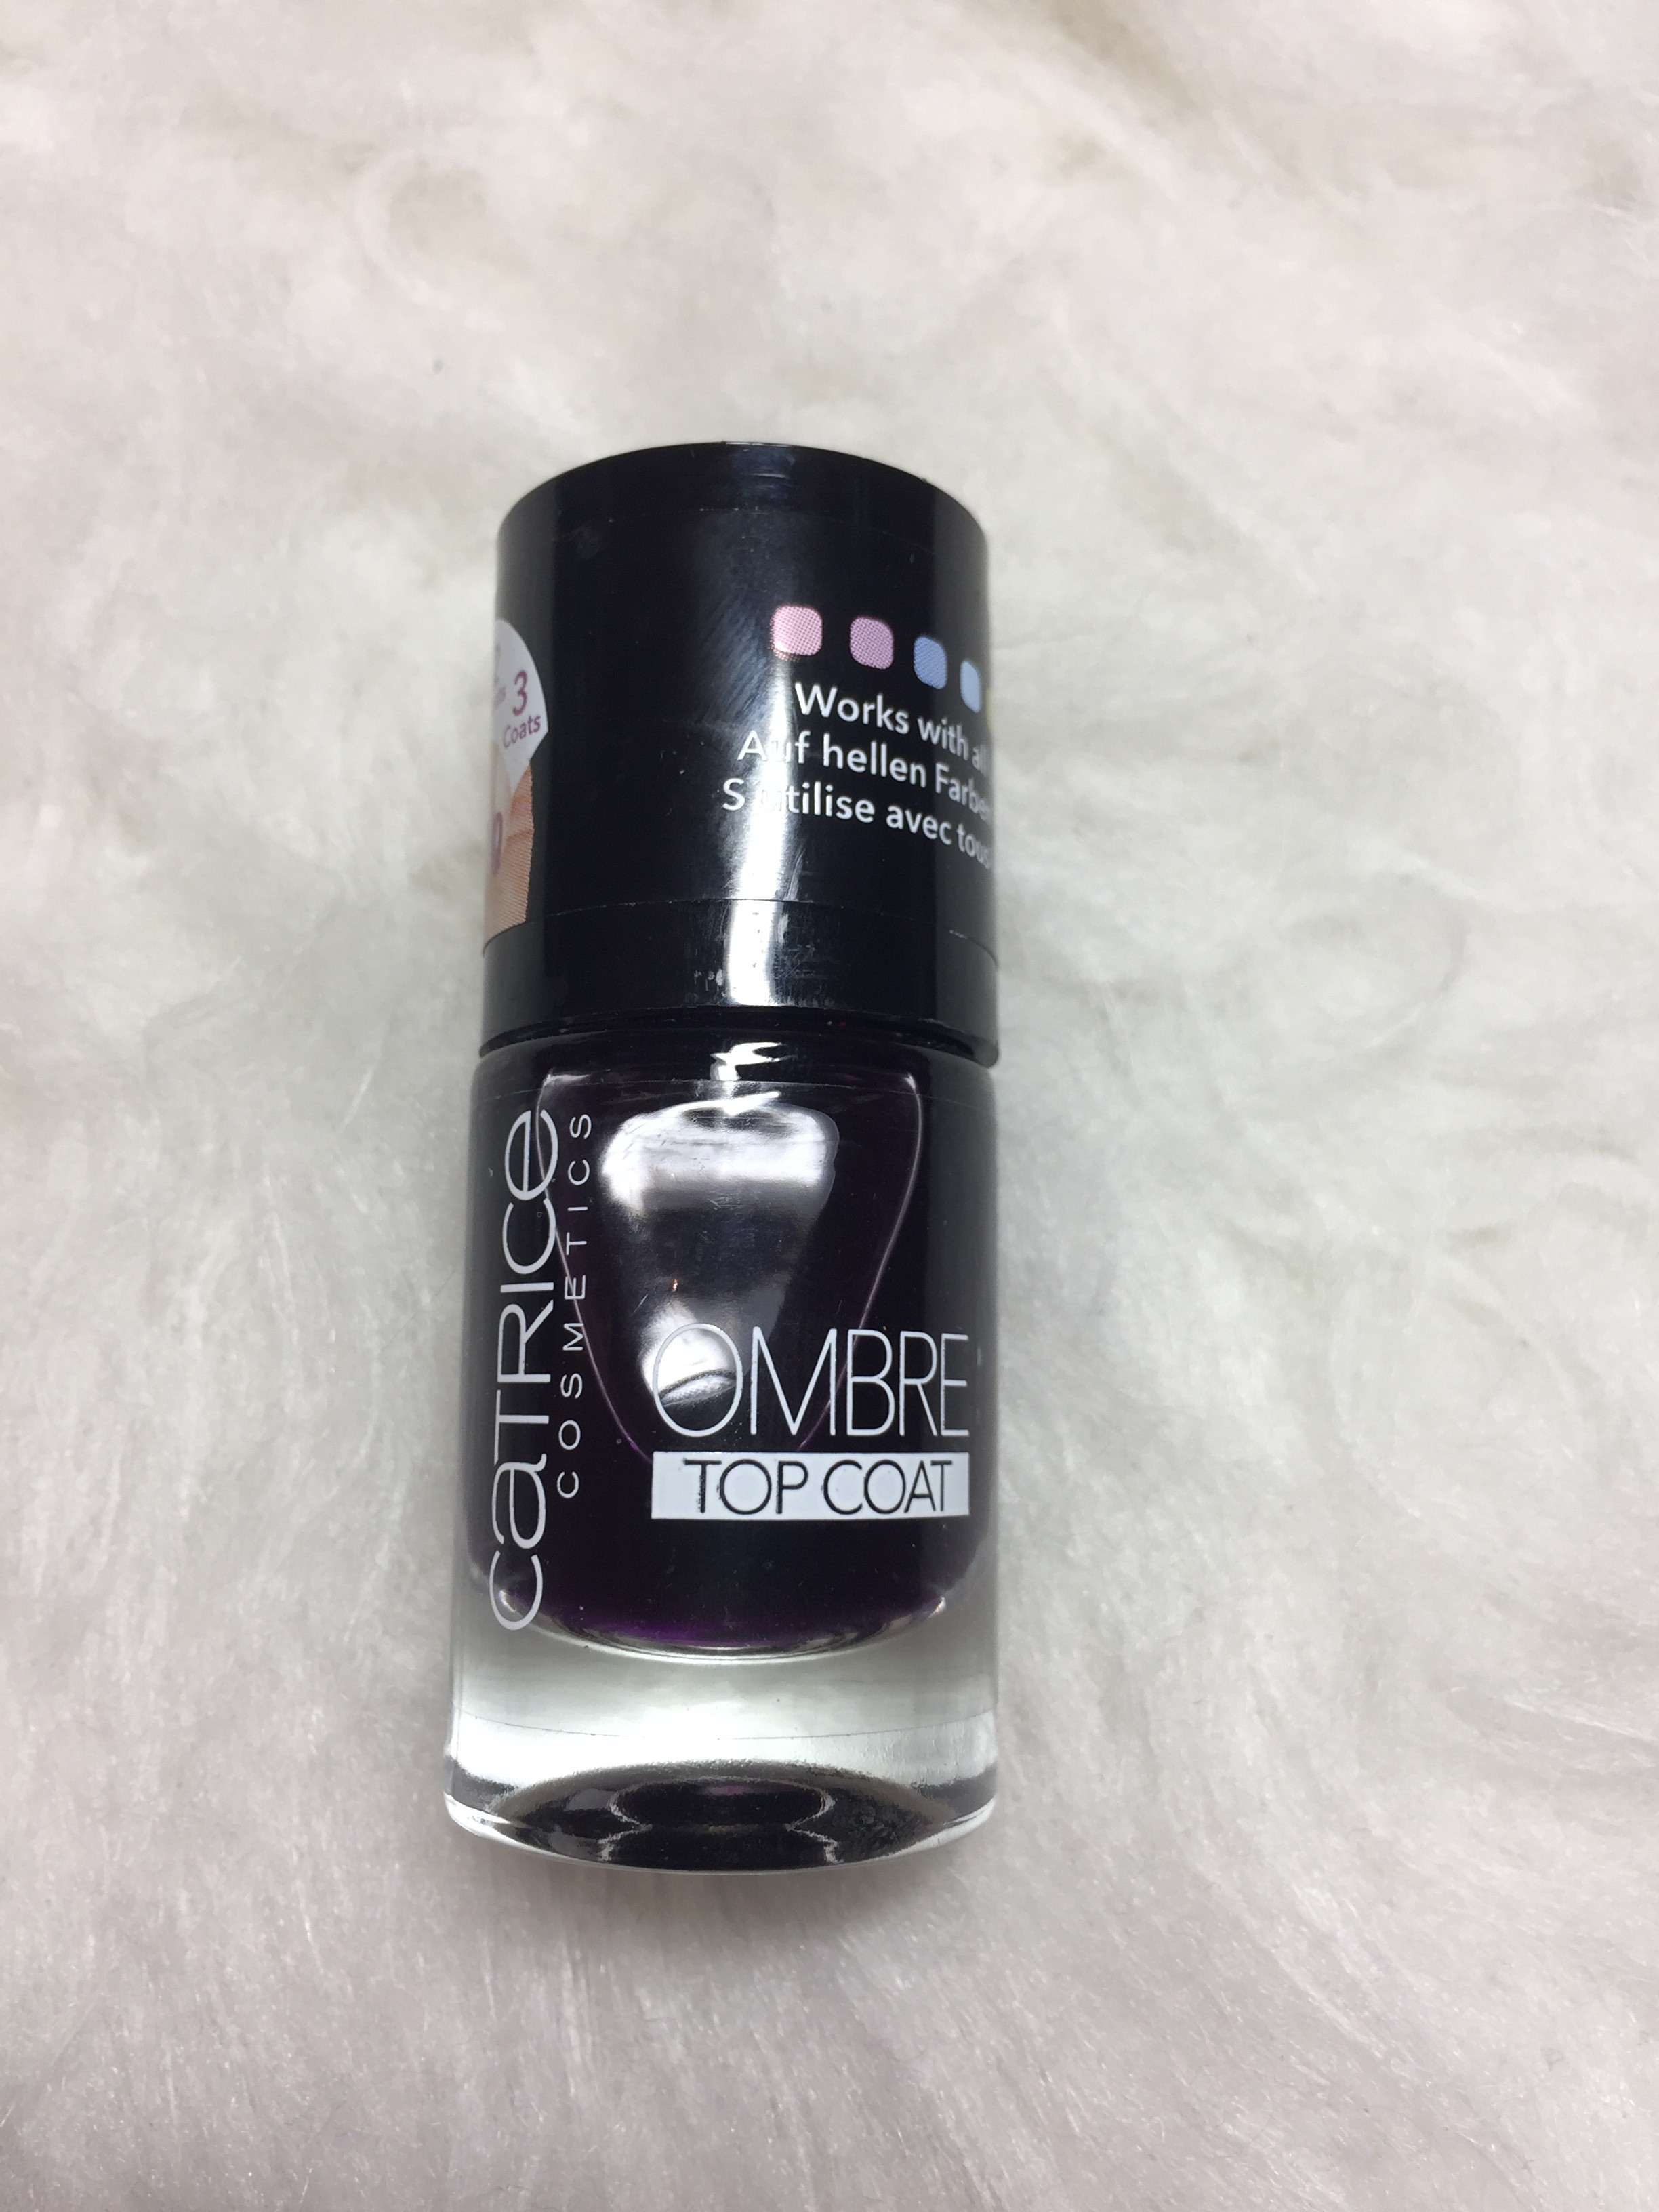 Ombré top coat Catrice